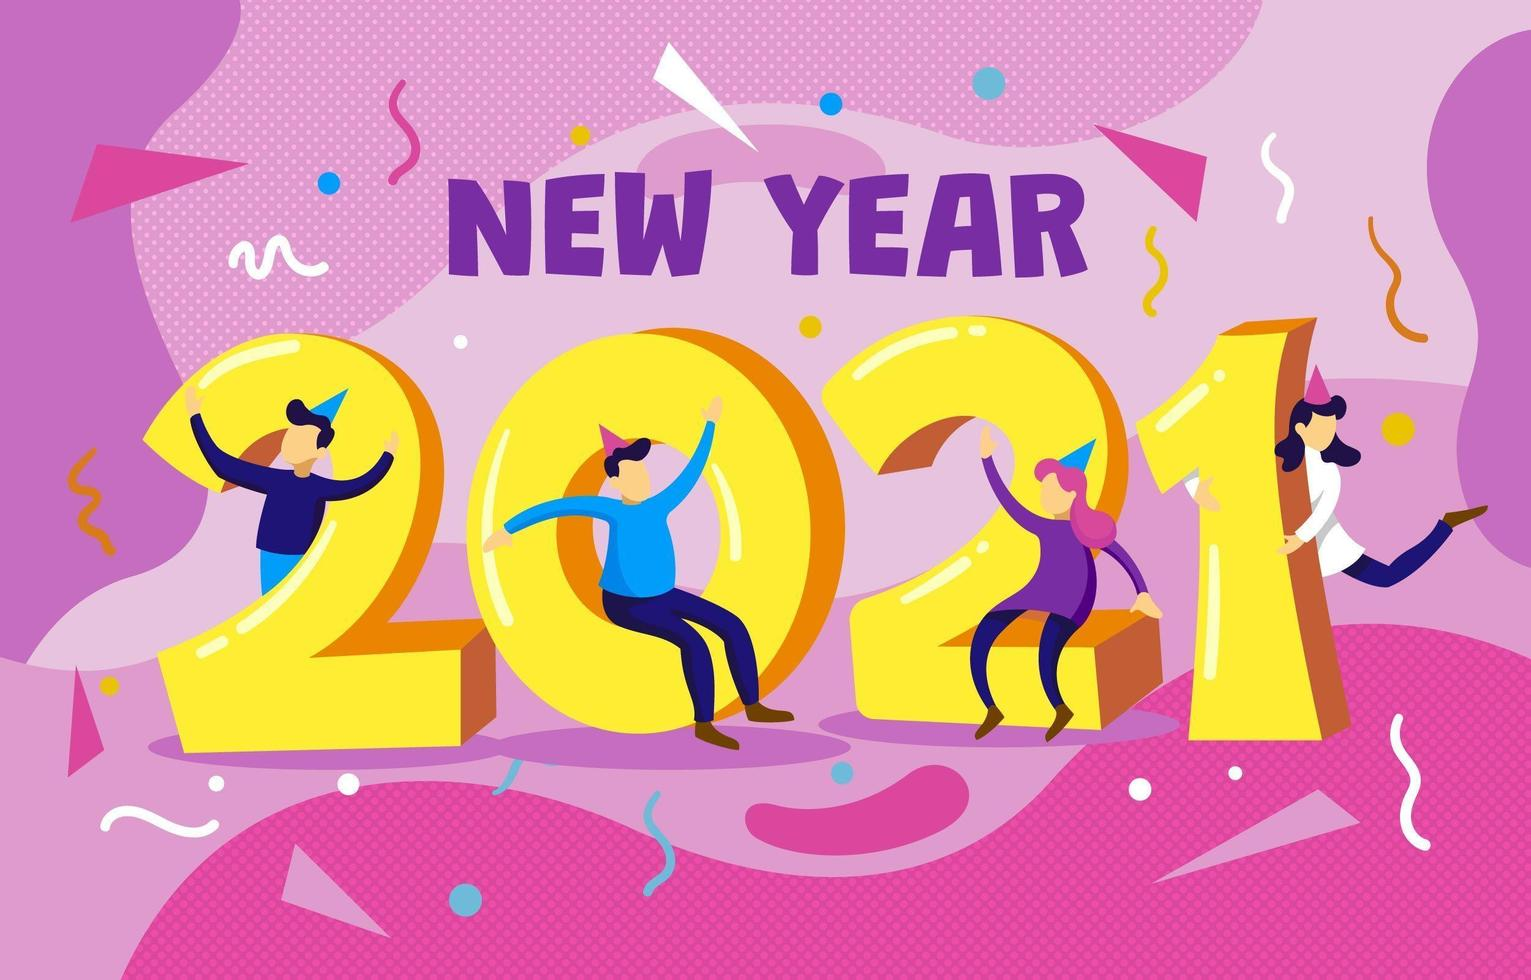 2021 with People Celebrating New Year vector